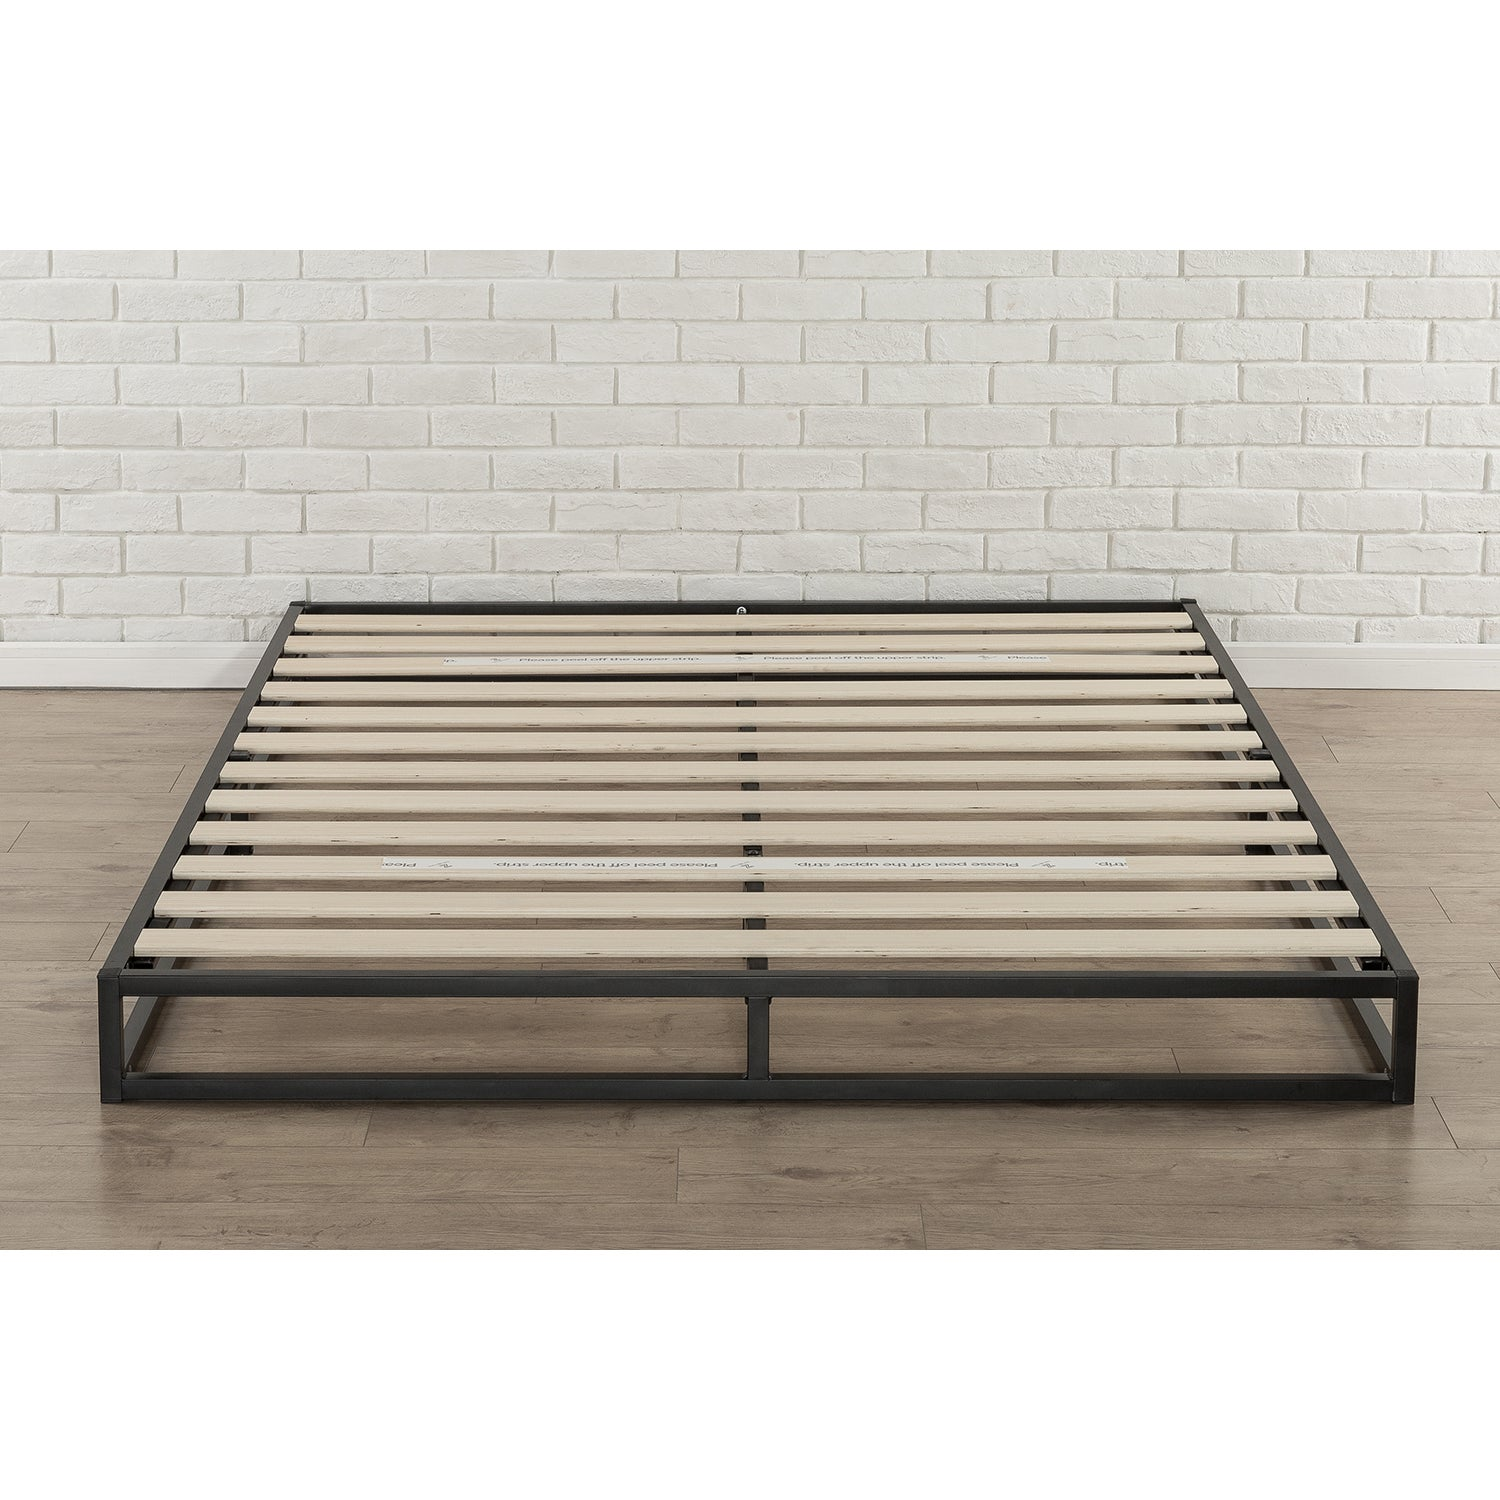 Shop Priage By Zinus 6 Inch Queen Size Platforma Low Profile Bed